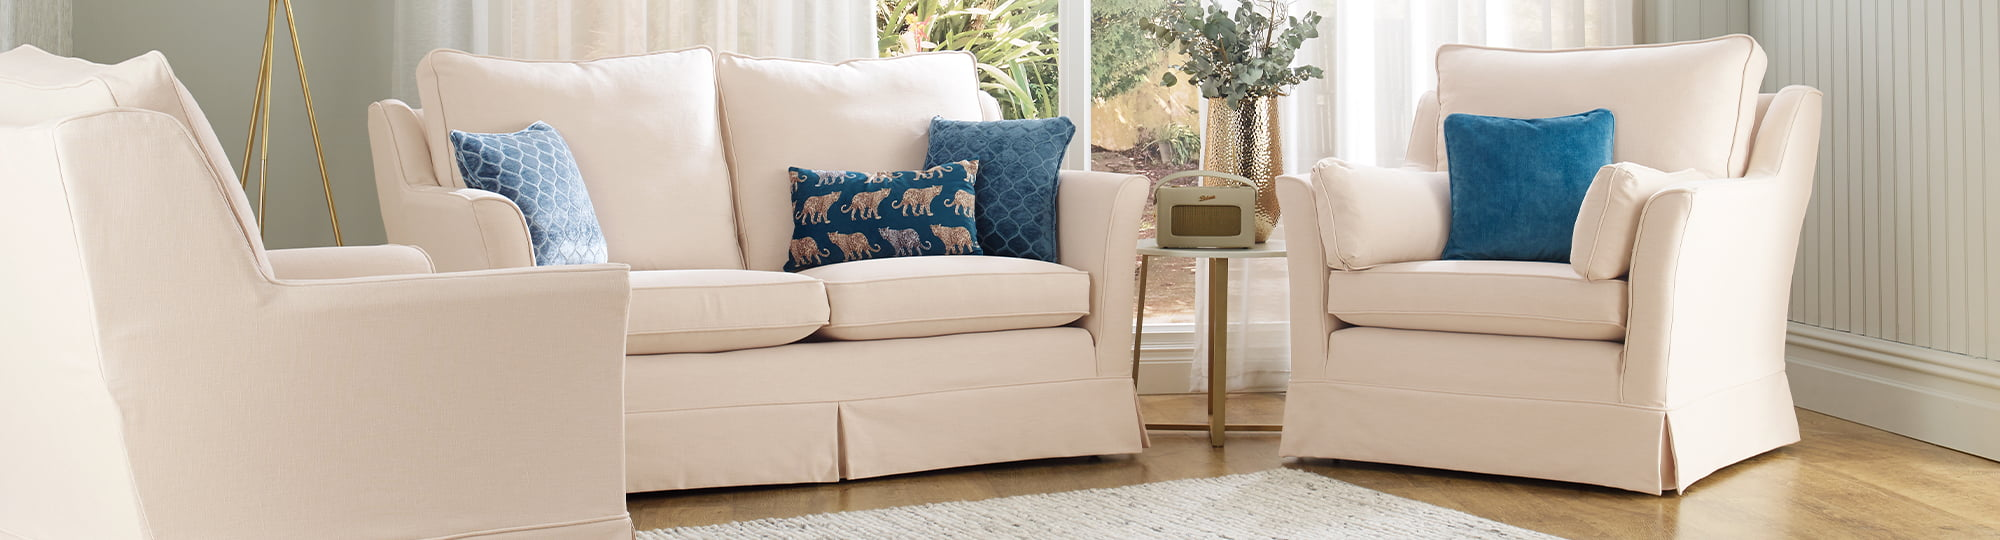 Bespoke sofa covers in Luxury Cotton Weave - Stone